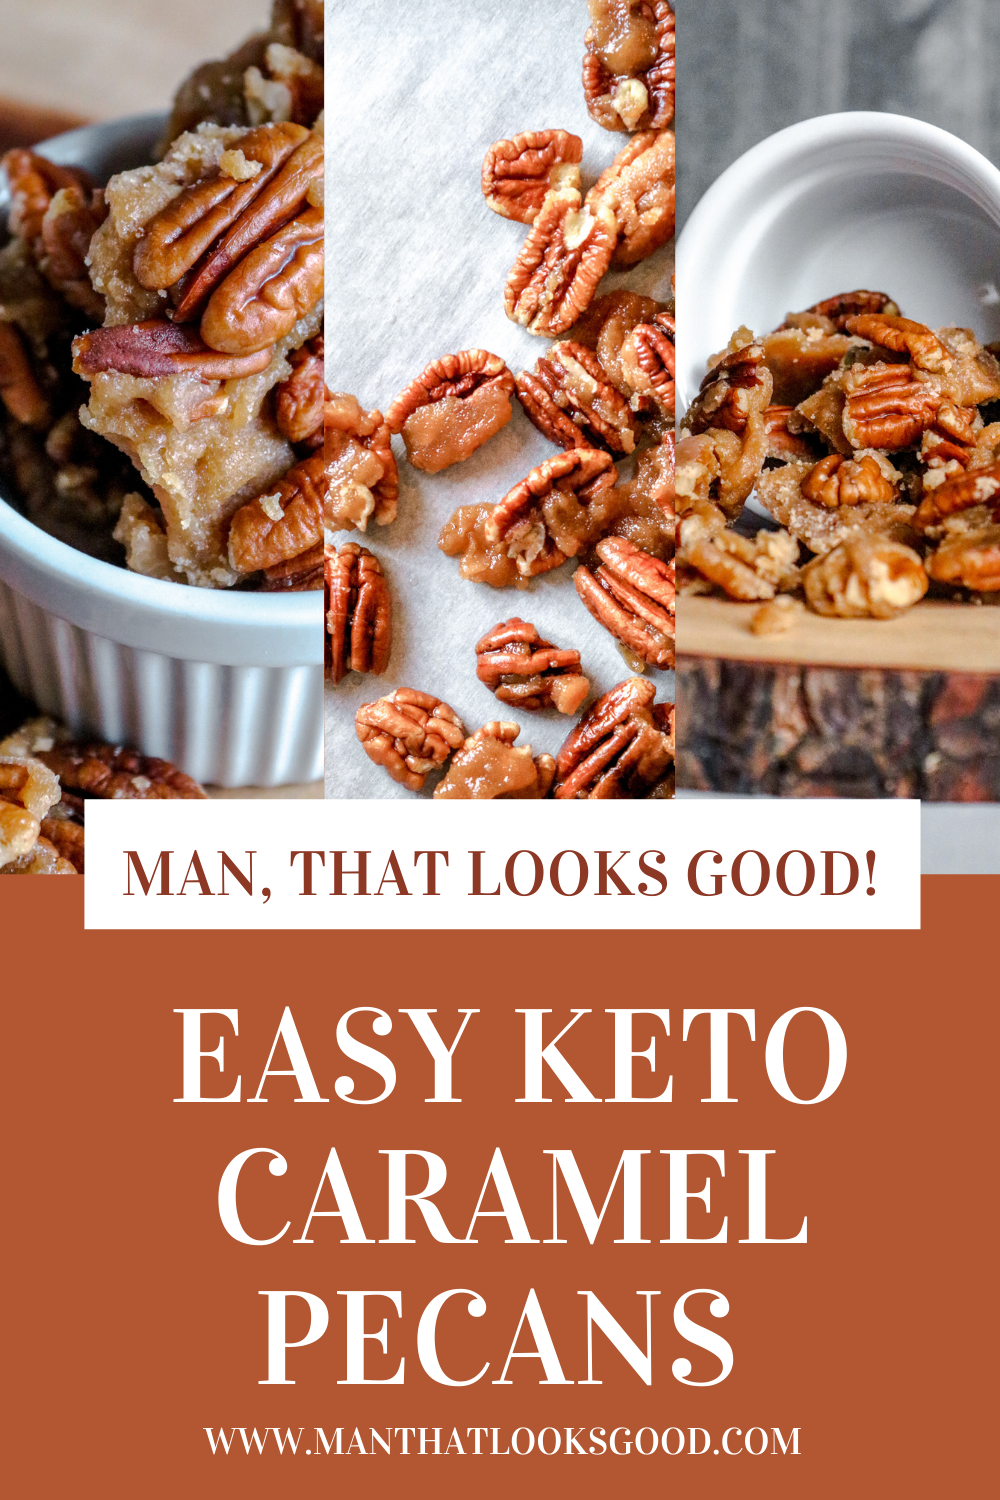 on a Keto diet and getting burnt out with borning Keto snacks? Check out these Keto Caramel Pecans and other Keto friendly snacks. #kteo #ketosnacks #ketorecipes #caramelpecans #manthatlooksgood